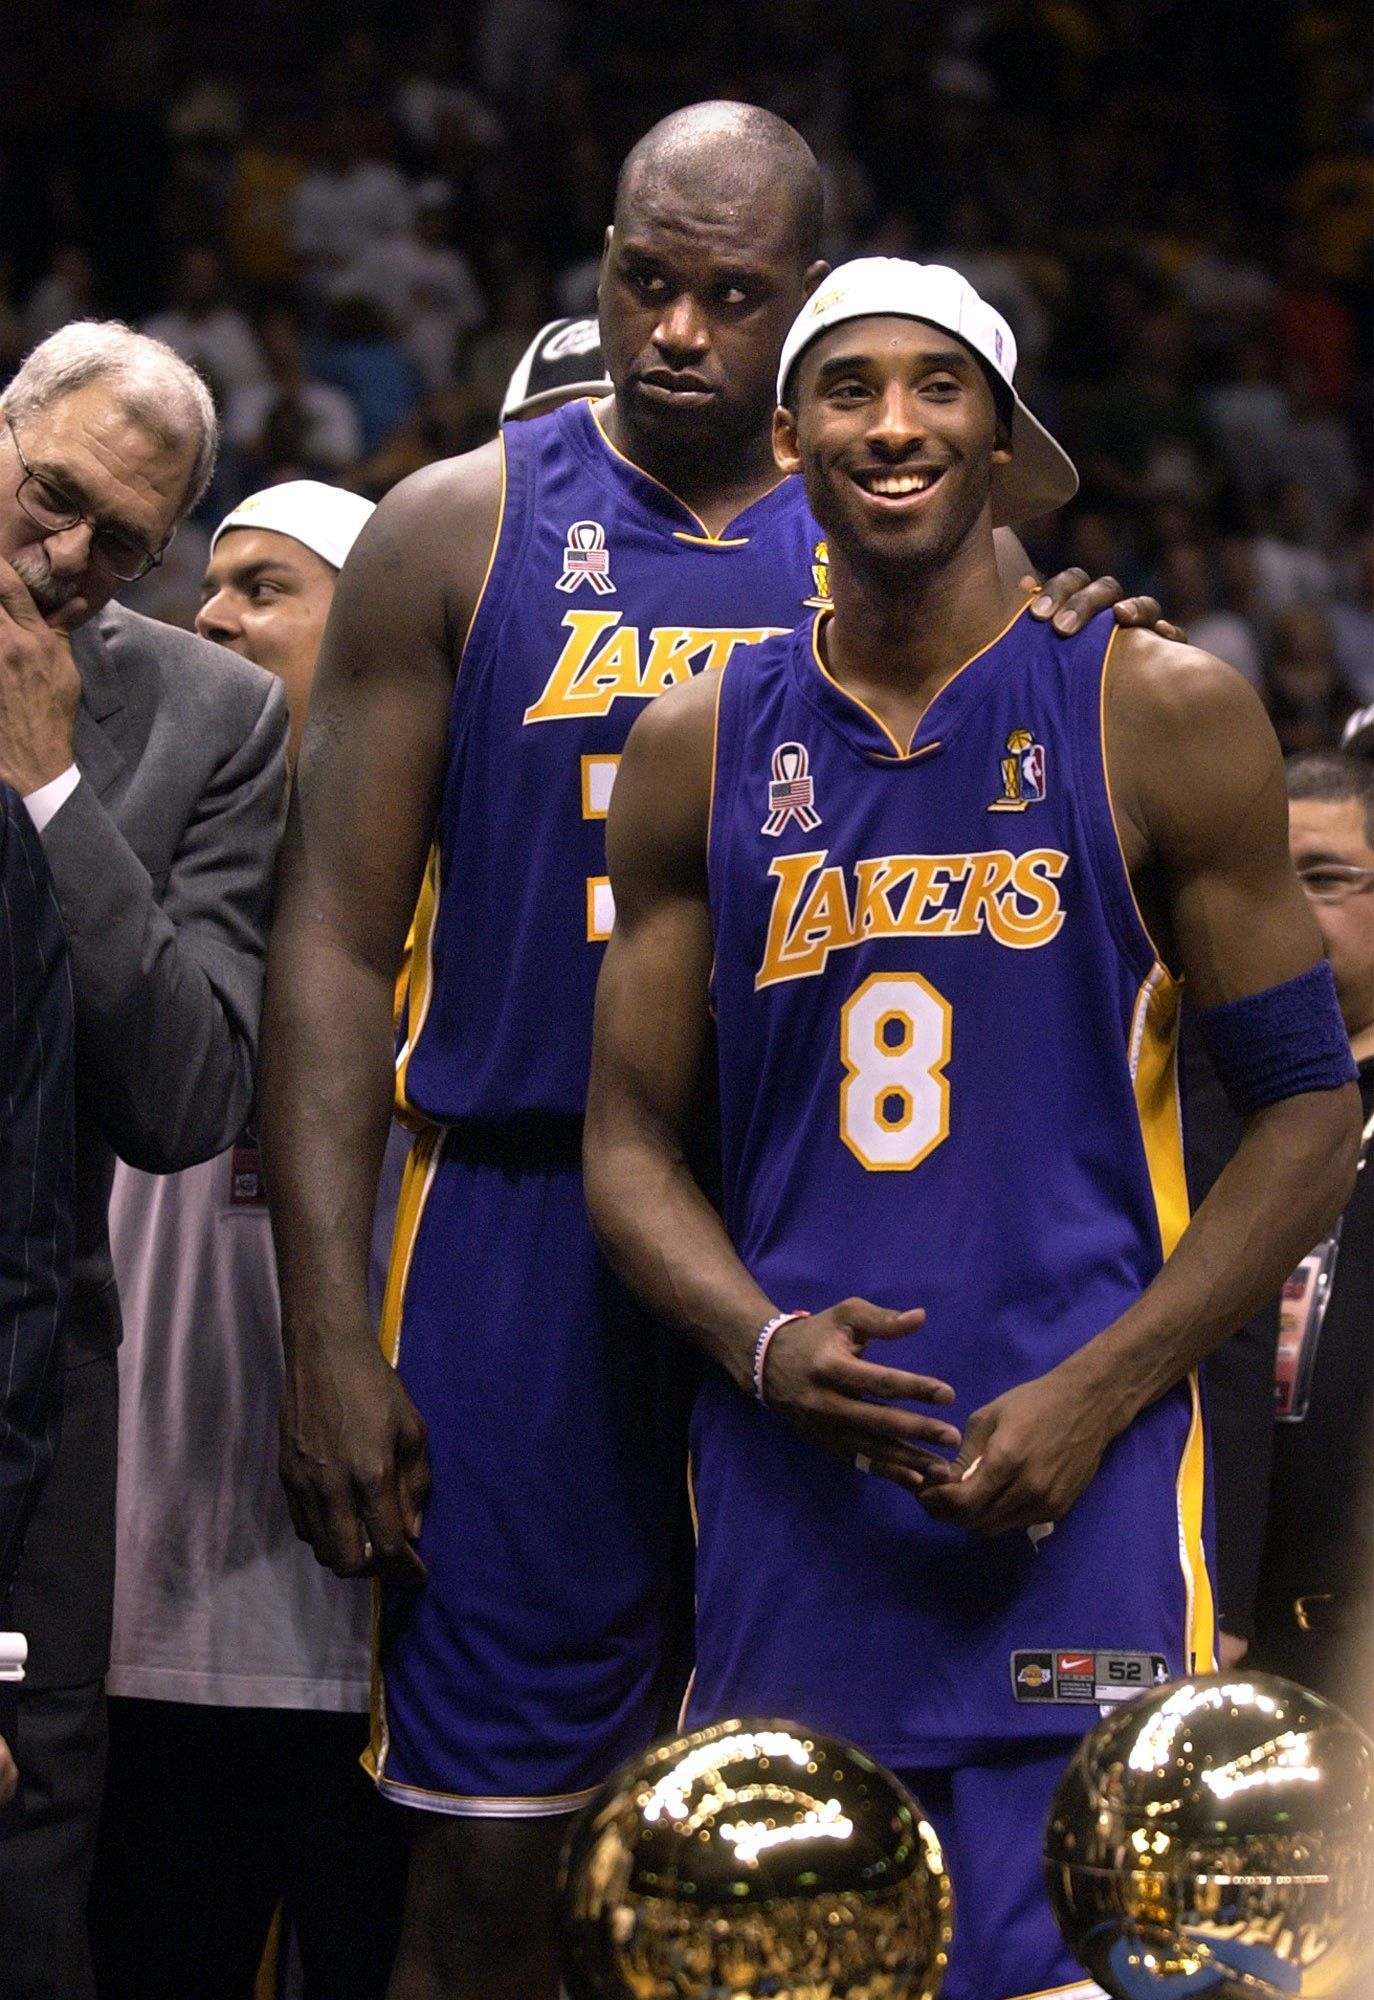 I got the chance to see Shaq and Kobe play when I was younger. Granted I  don t remember anything since I was so young d18f30c31